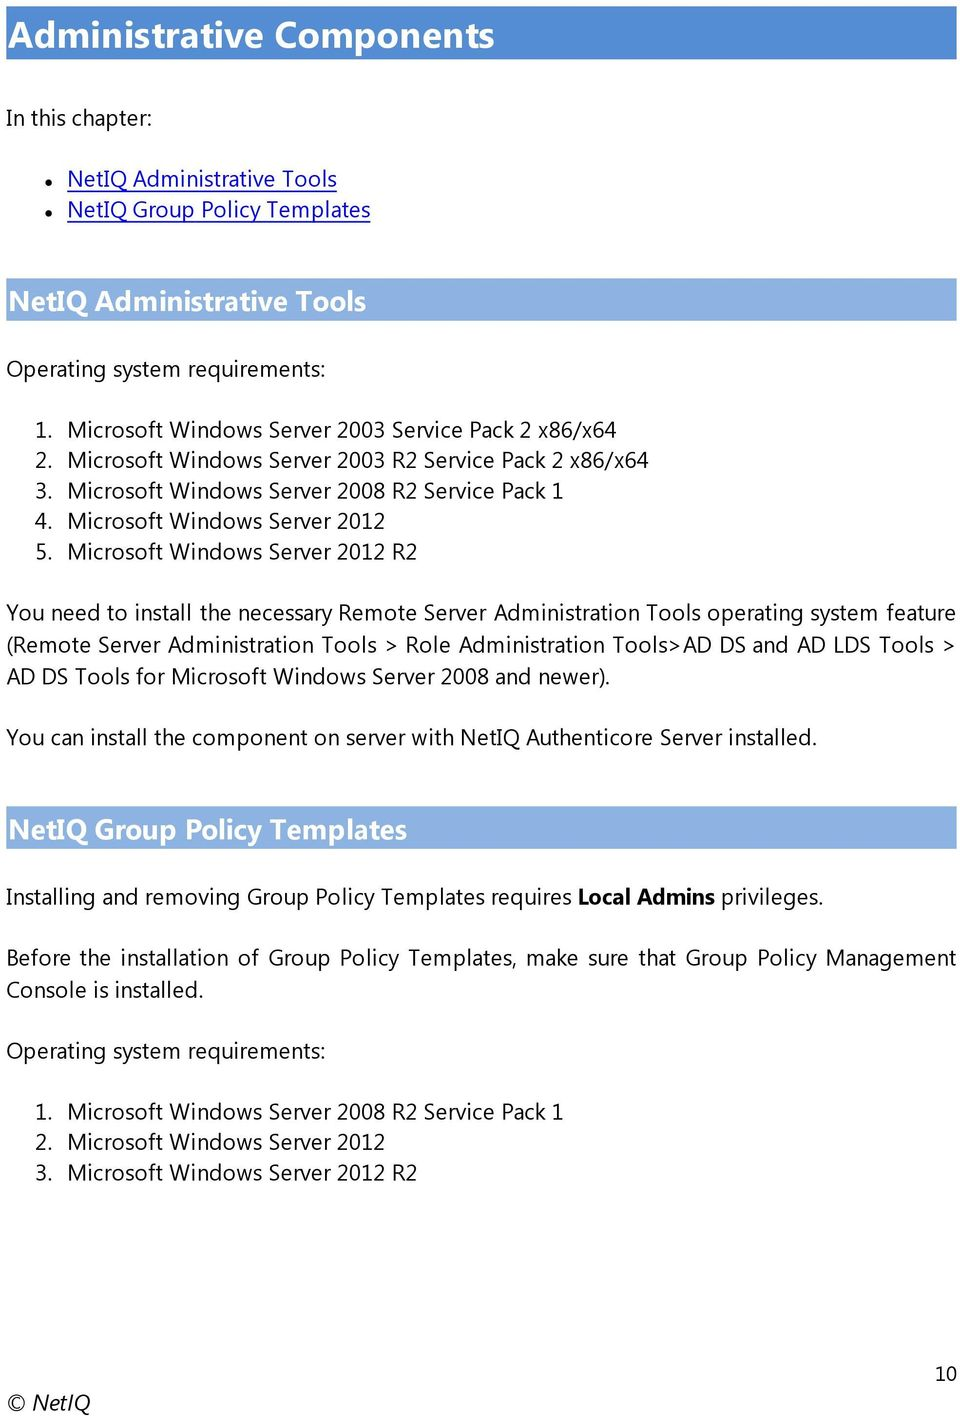 Microsoft Windows Server 2012 R2 You need to install the necessary Remote Server Administration Tools operating system feature (Remote Server Administration Tools > Role Administration Tools>AD DS